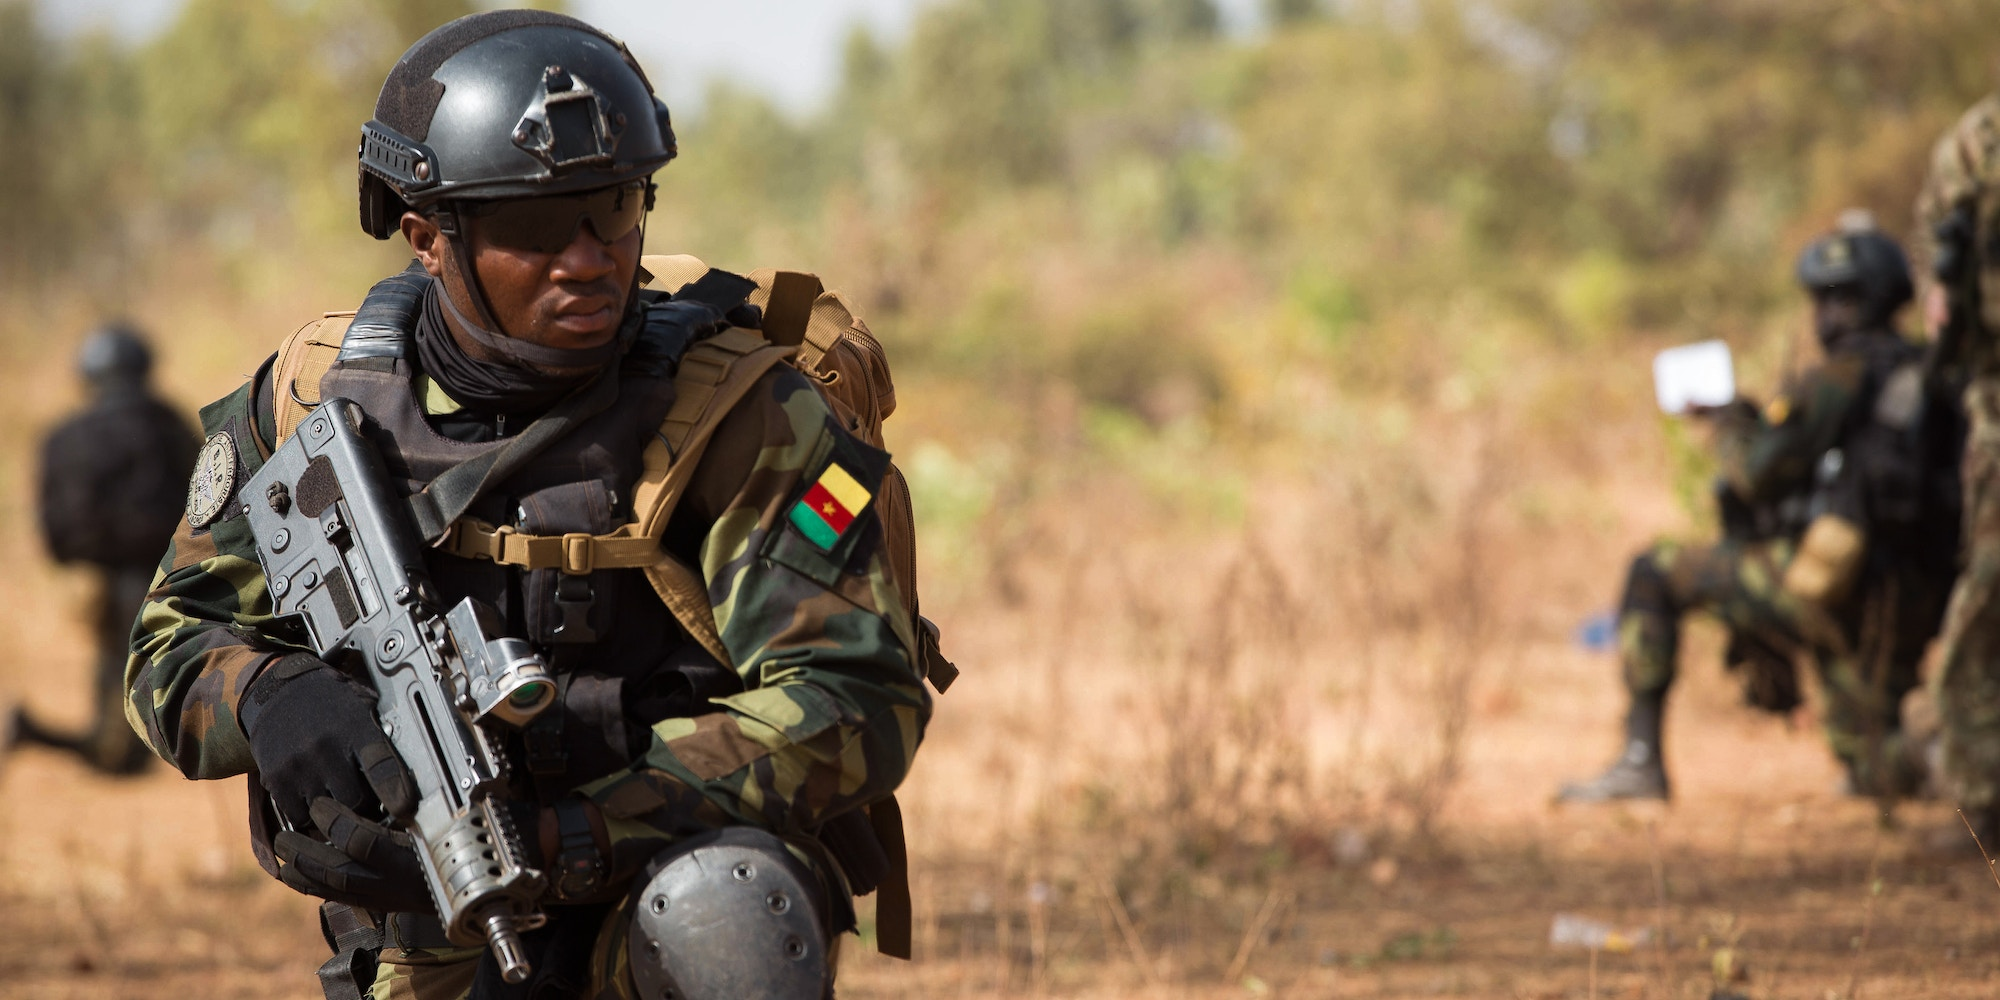 Cameroon soldiers, Burkina Faso soldiers and Niger soldiers train identifying a enemy, Bobo-Dioulasso, Burkina Faso, Feb. 27, 2019. Hosted by Burkina Faso, Flintlock is designed to strengthen the ability of key partner nations in the region to counter violent extremist organizations, protect their borders and provide security for their people. (U.S. Army photo by Spc. Dracorius white)